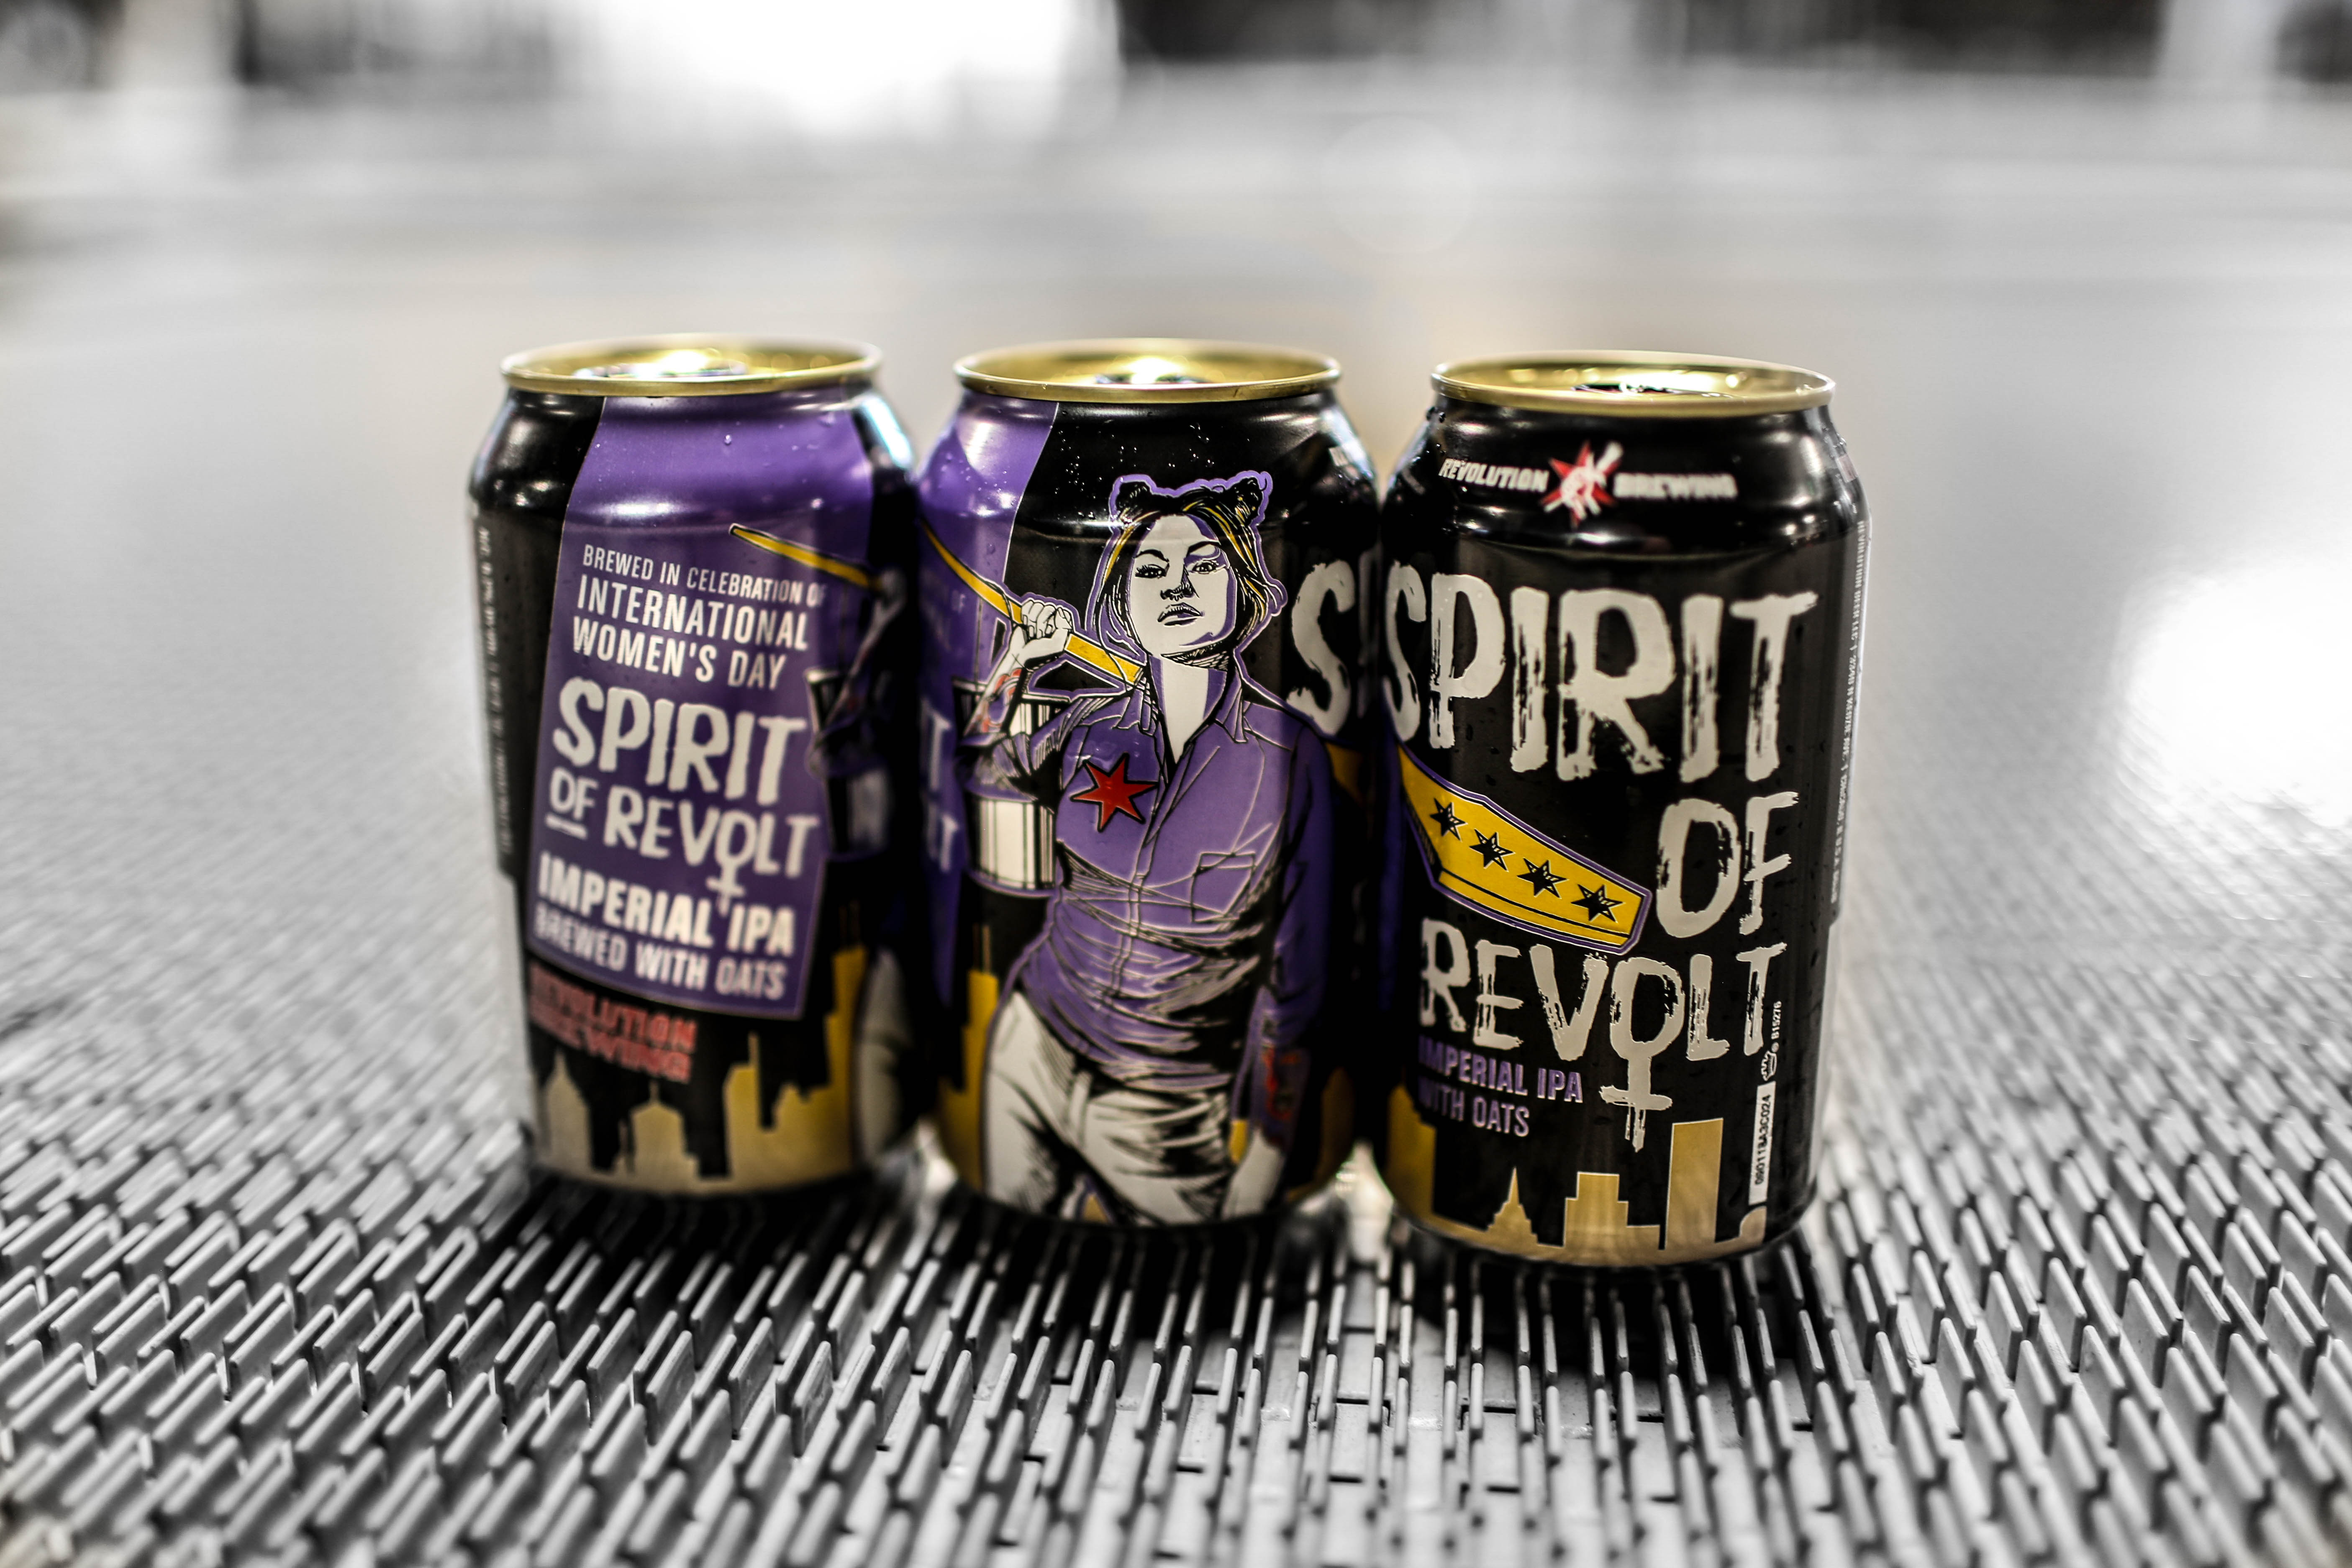 A six-pack of canned beer in black, purple, and white cans.